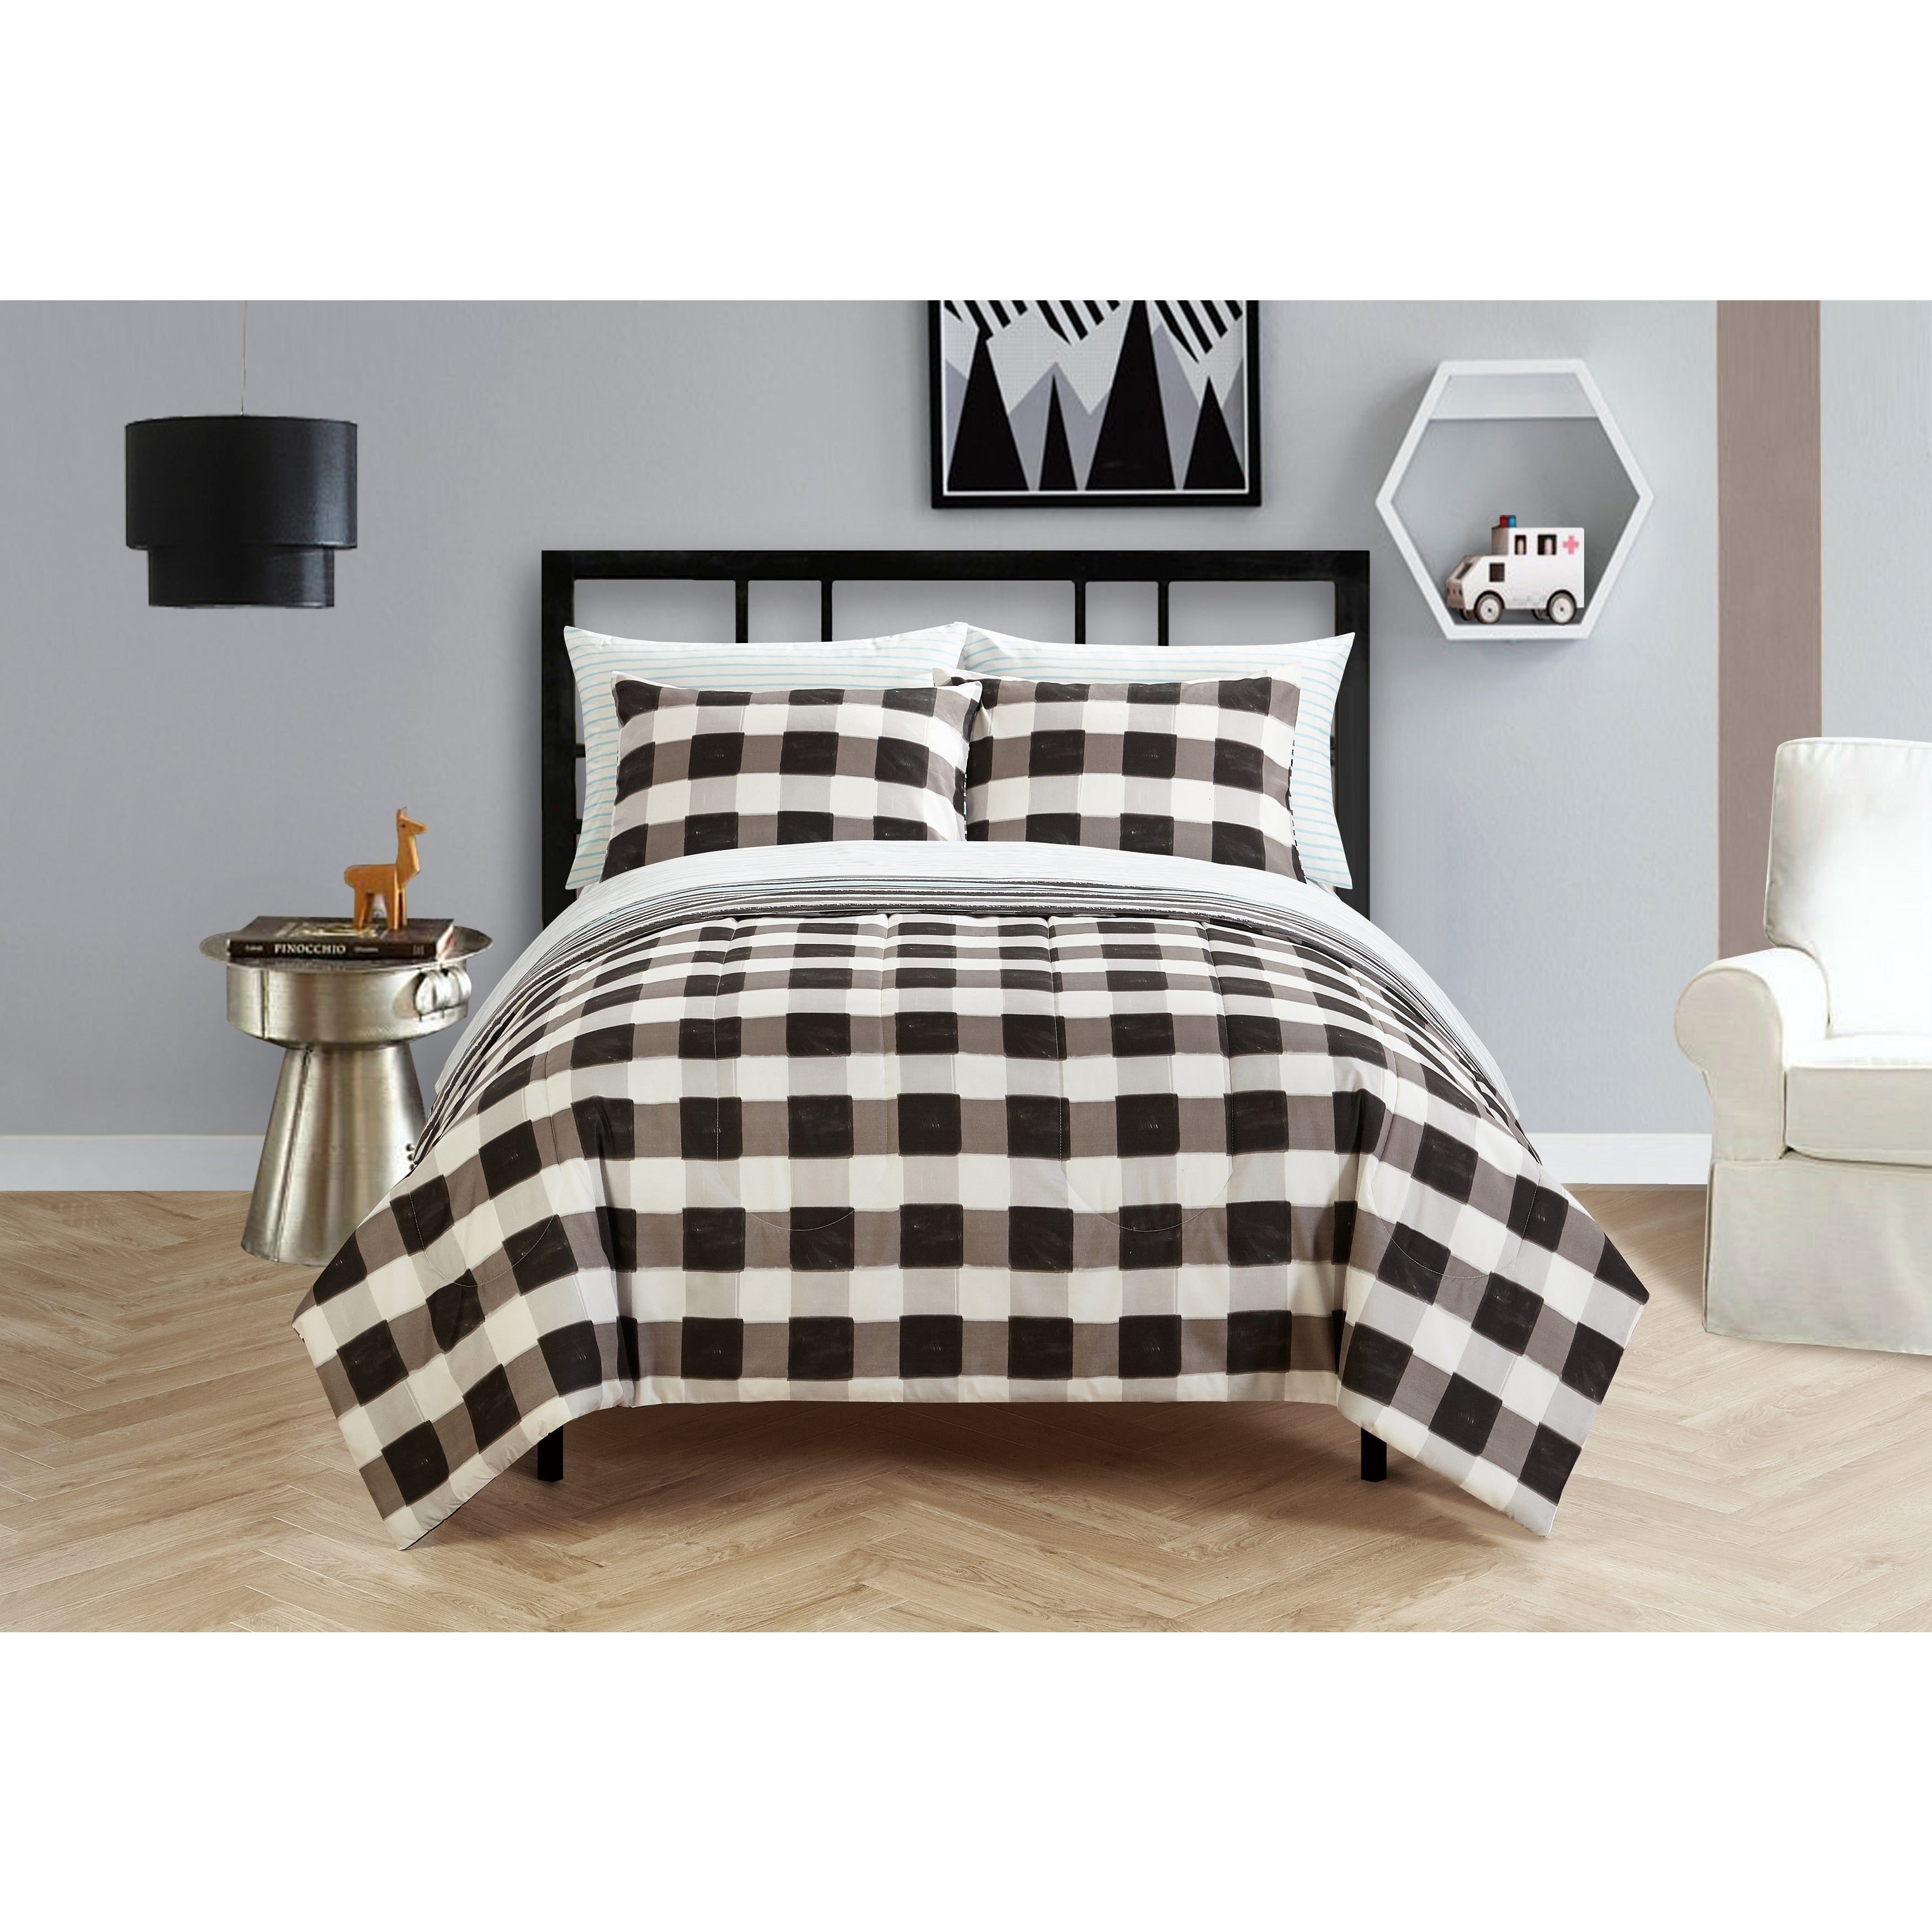 Shop Black And White Checkered Bed In A Bag Free Shipping On